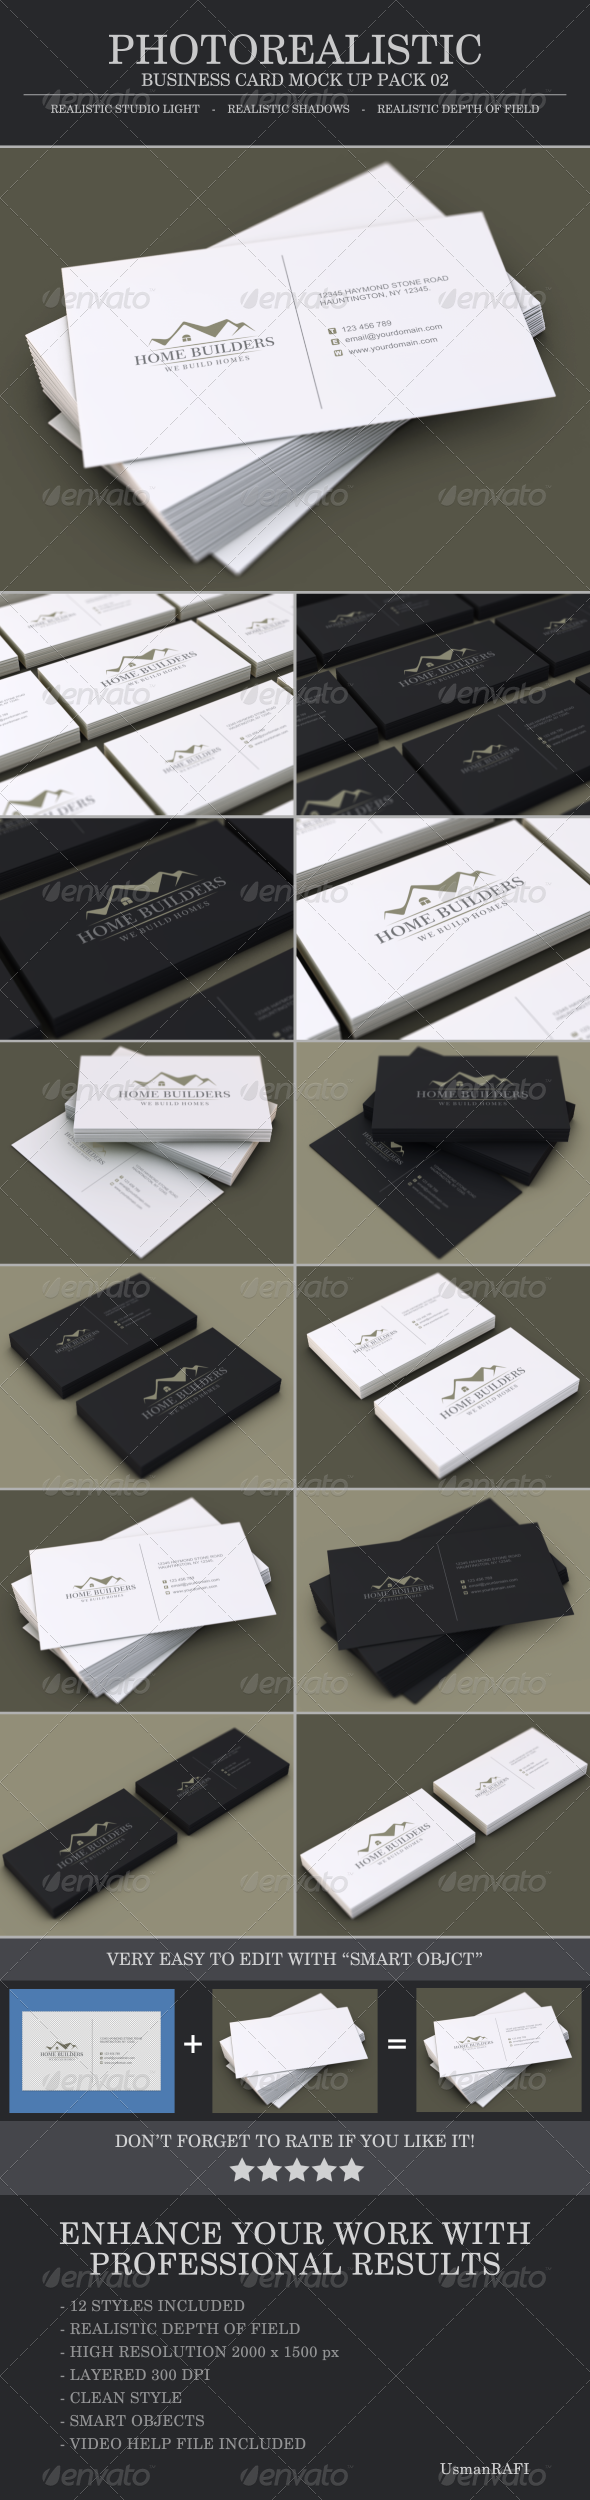 Photo realistic business card mock up pack 02 graphicriver photo photo realistic business card mock up pack 02 graphicriver photo realistic business card mock up pack 02 is clean and elegant photoshop business card colourmoves